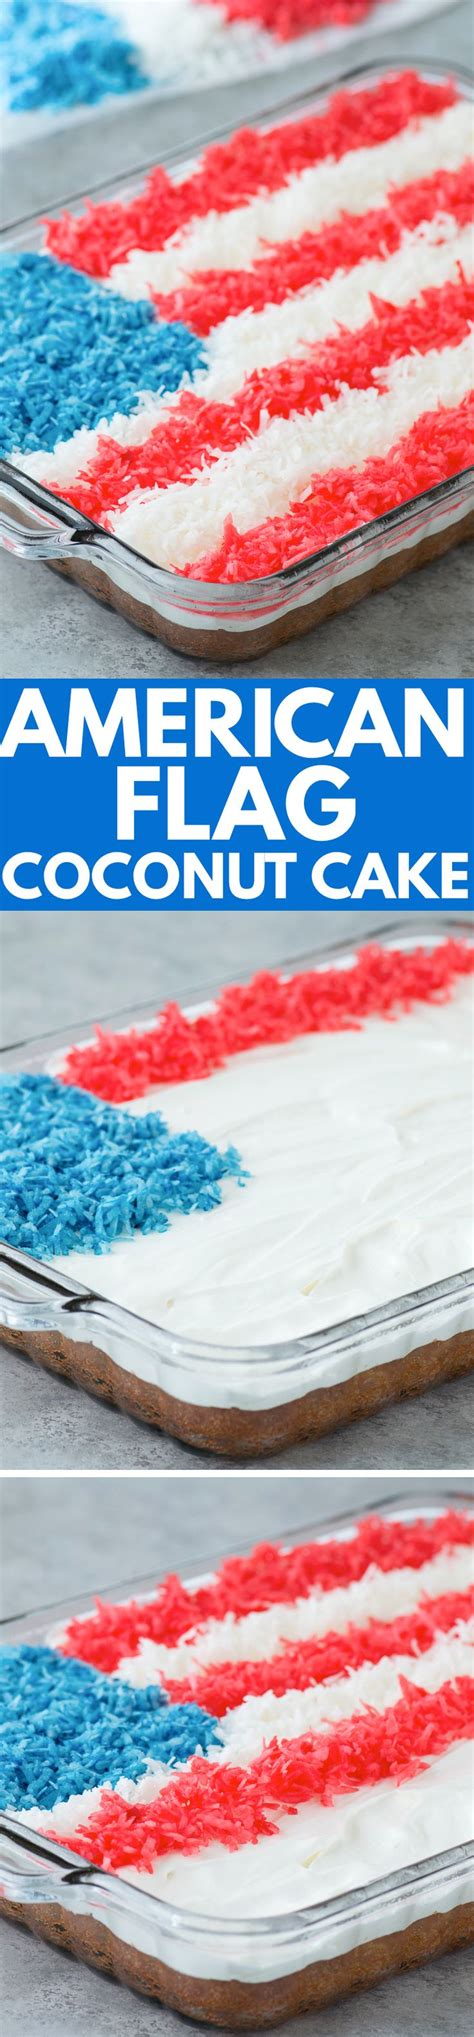 easy 4th of july cakes 372 best images about patriotic cakes cupcakes on pinterest patriotic desserts red white